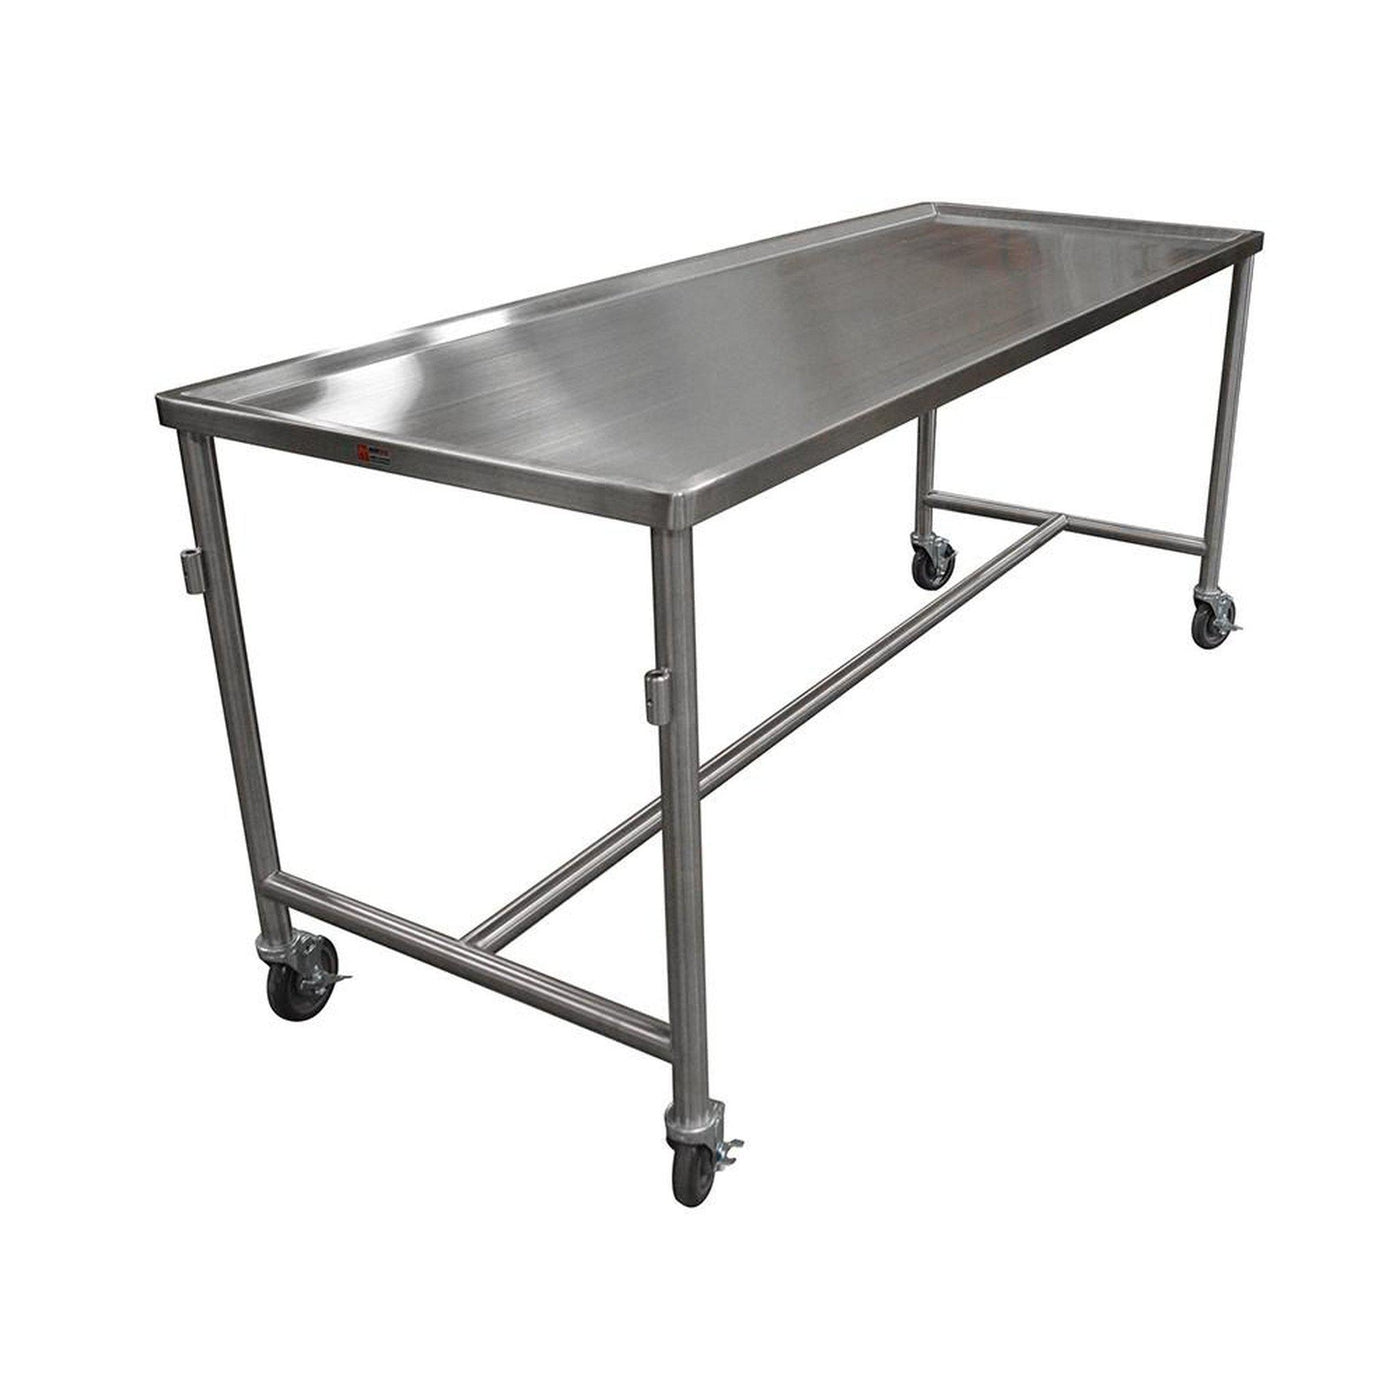 Economy Dissection Platform-Anatomy Dissection Tables-Mortech Manufacturing Company Inc. Quality Stainless Steel Autopsy, Morgue, Funeral Home, Necropsy, Veterinary / Anatomy, Dissection Equipment and Accessories